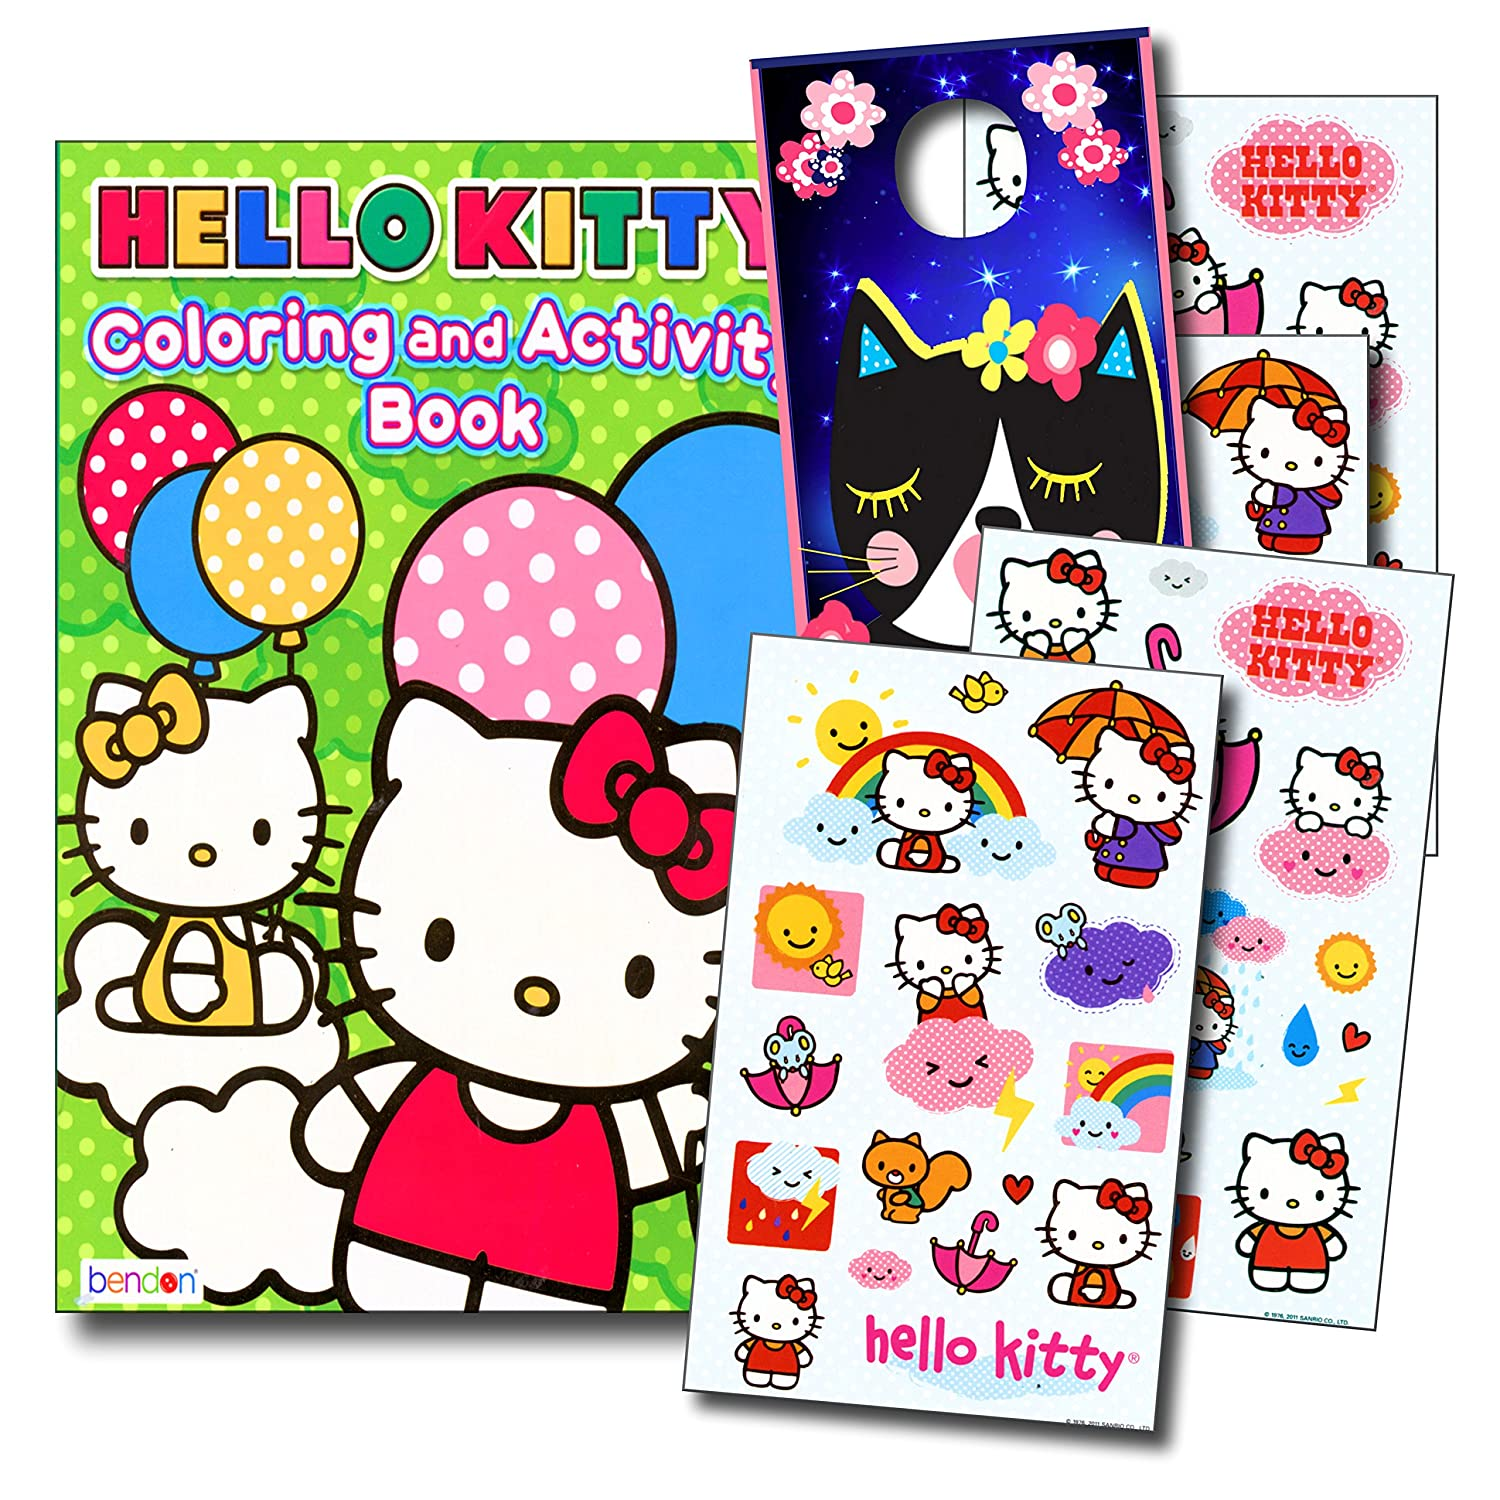 Hello Kitty Coloring Book and Stickers Super Set~ Hello Kitty Coloring Book with Hello Kitty Stickers & Specialty Door Hanger